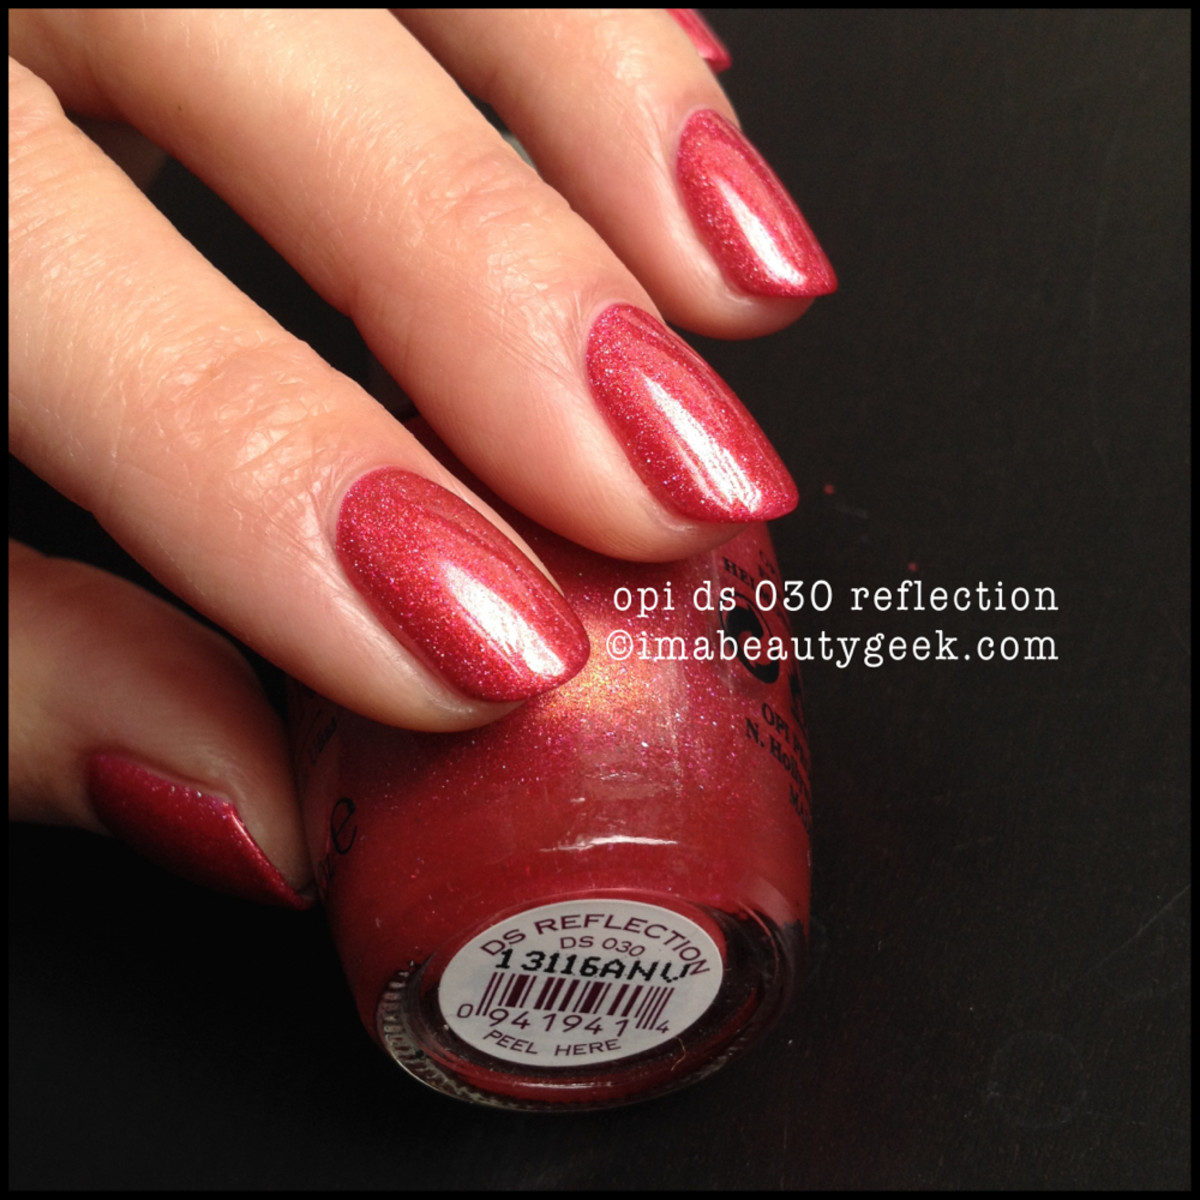 OPI Reflection DS 030